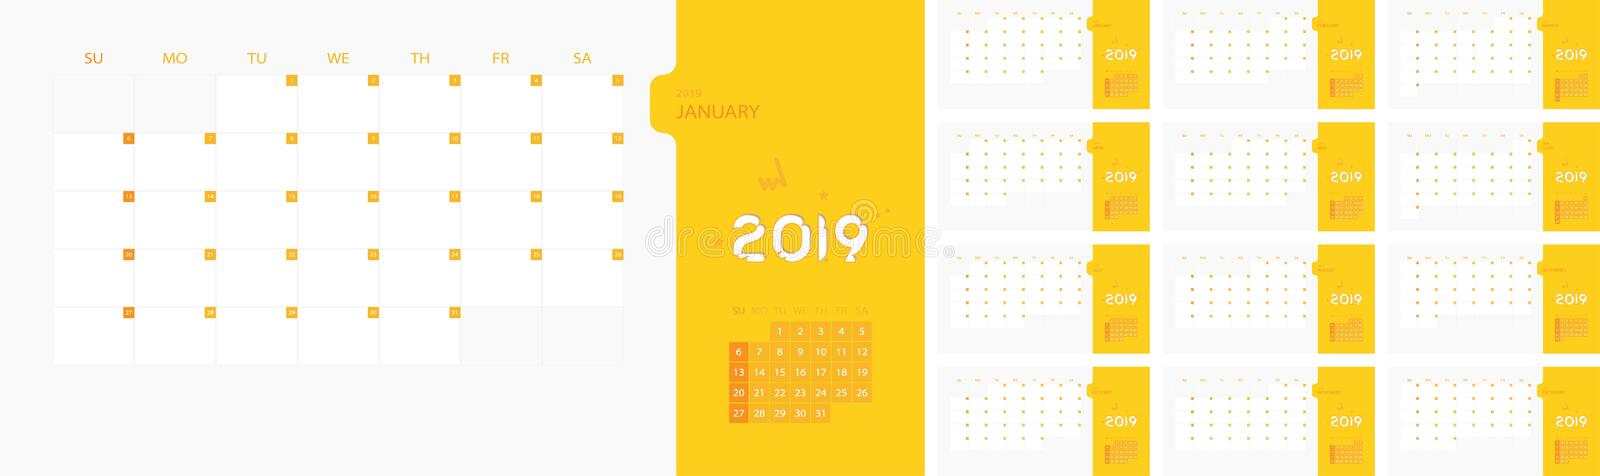 Calendar design template for 2019 Simple planner week starts on sunday. Design print template with place for logo company. Flat ve vector illustration